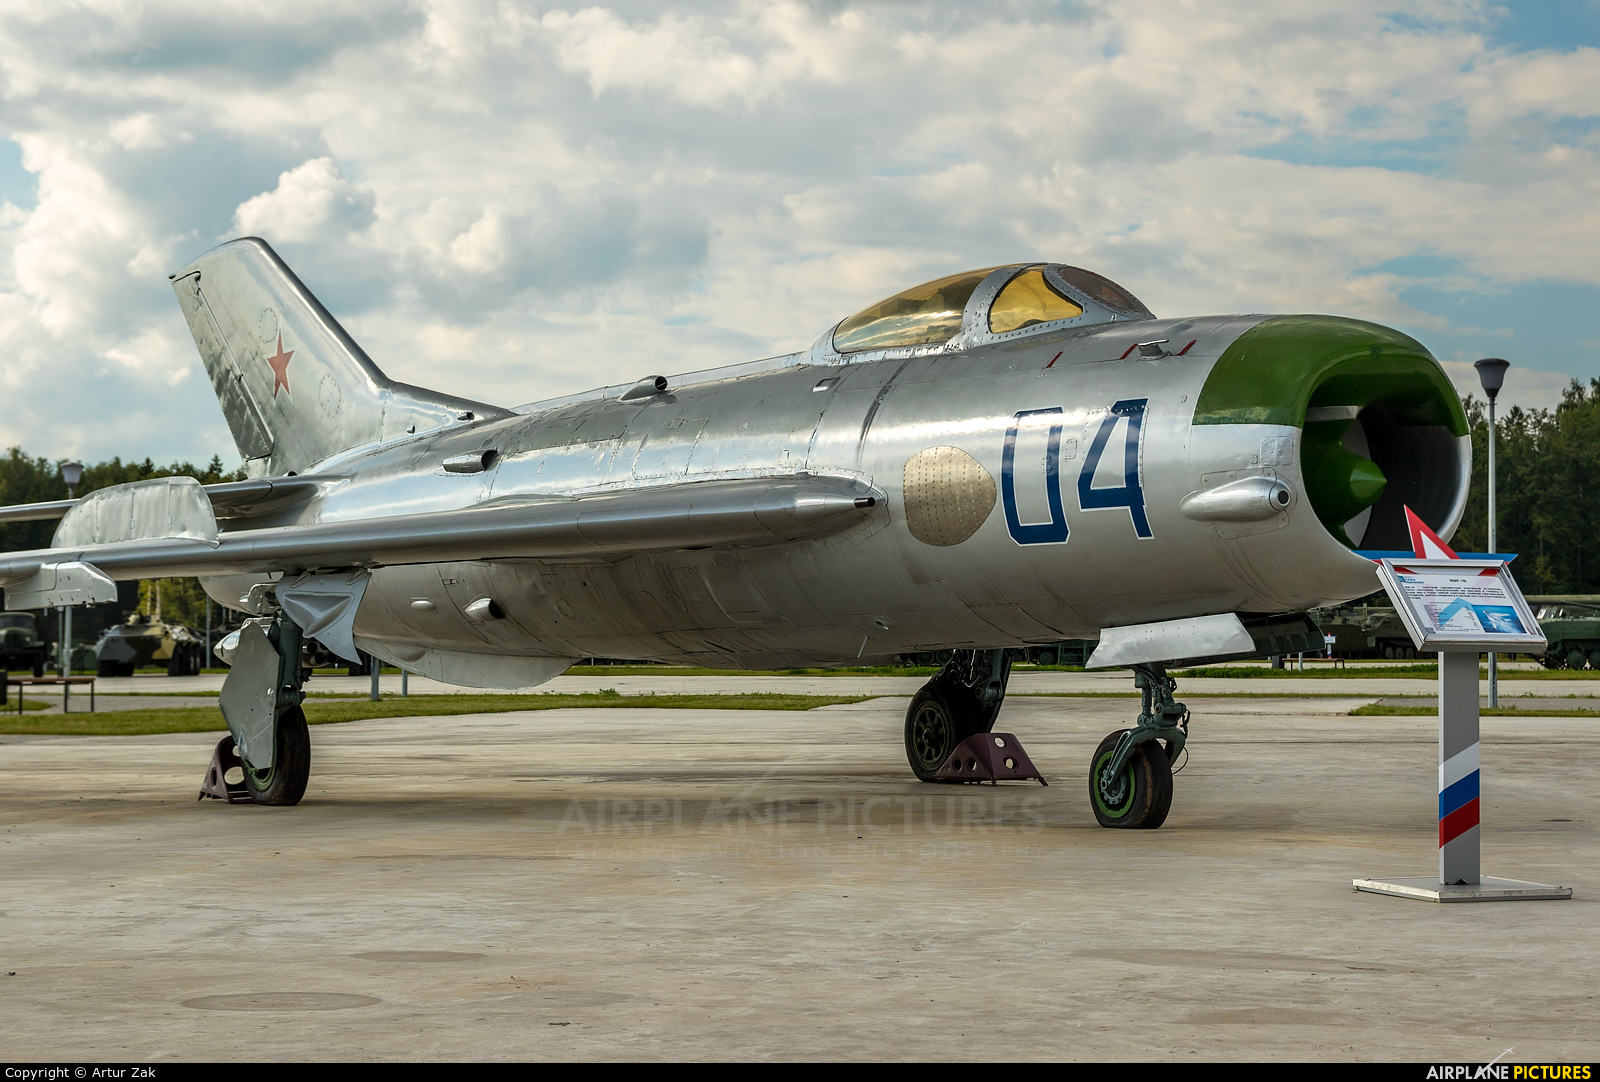 Russia - Air Force 04 aircraft at Off Airport - Russia